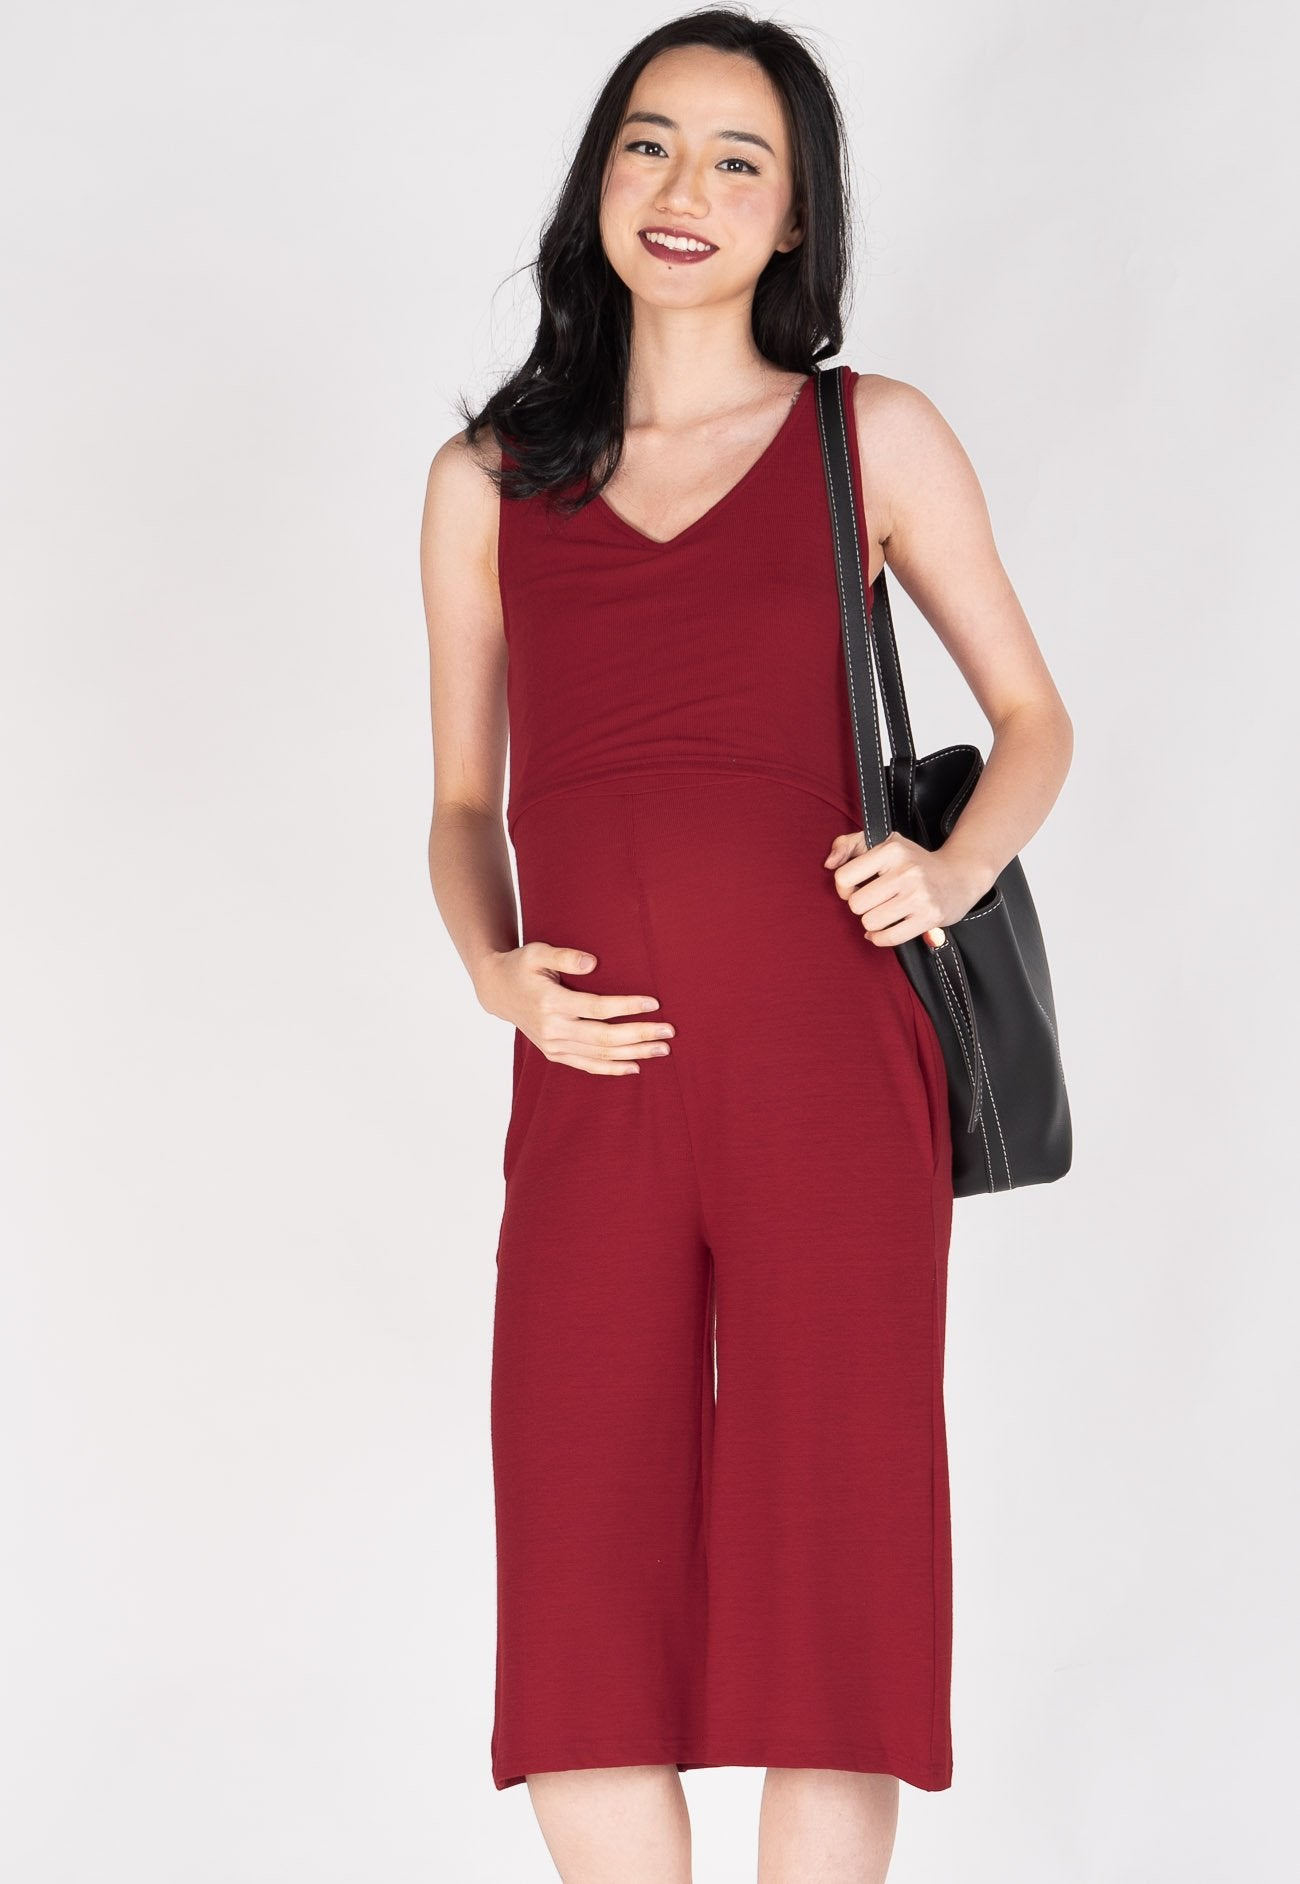 Carefree V Neck Nursing Jumpsuit in Red  by Jump Eat Cry - Maternity and nursing wear